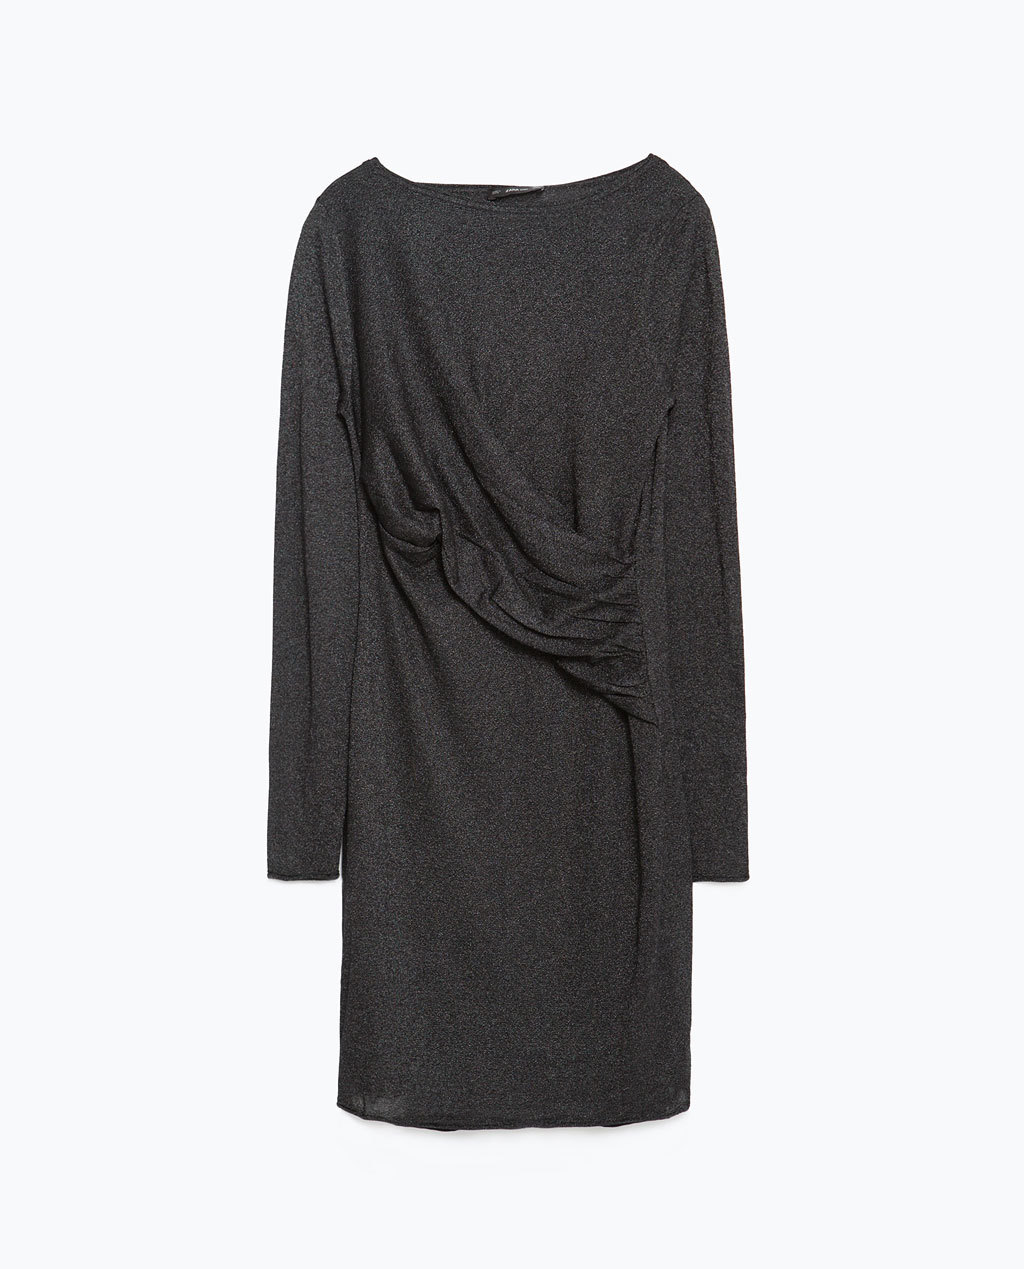 Dress With Draped Front - style: t-shirt; length: mid thigh; neckline: slash/boat neckline; fit: loose; pattern: plain; predominant colour: charcoal; occasions: casual; fibres: polyester/polyamide - stretch; sleeve length: long sleeve; sleeve style: standard; pattern type: fabric; texture group: jersey - stretchy/drapey; season: a/w 2015; wardrobe: basic